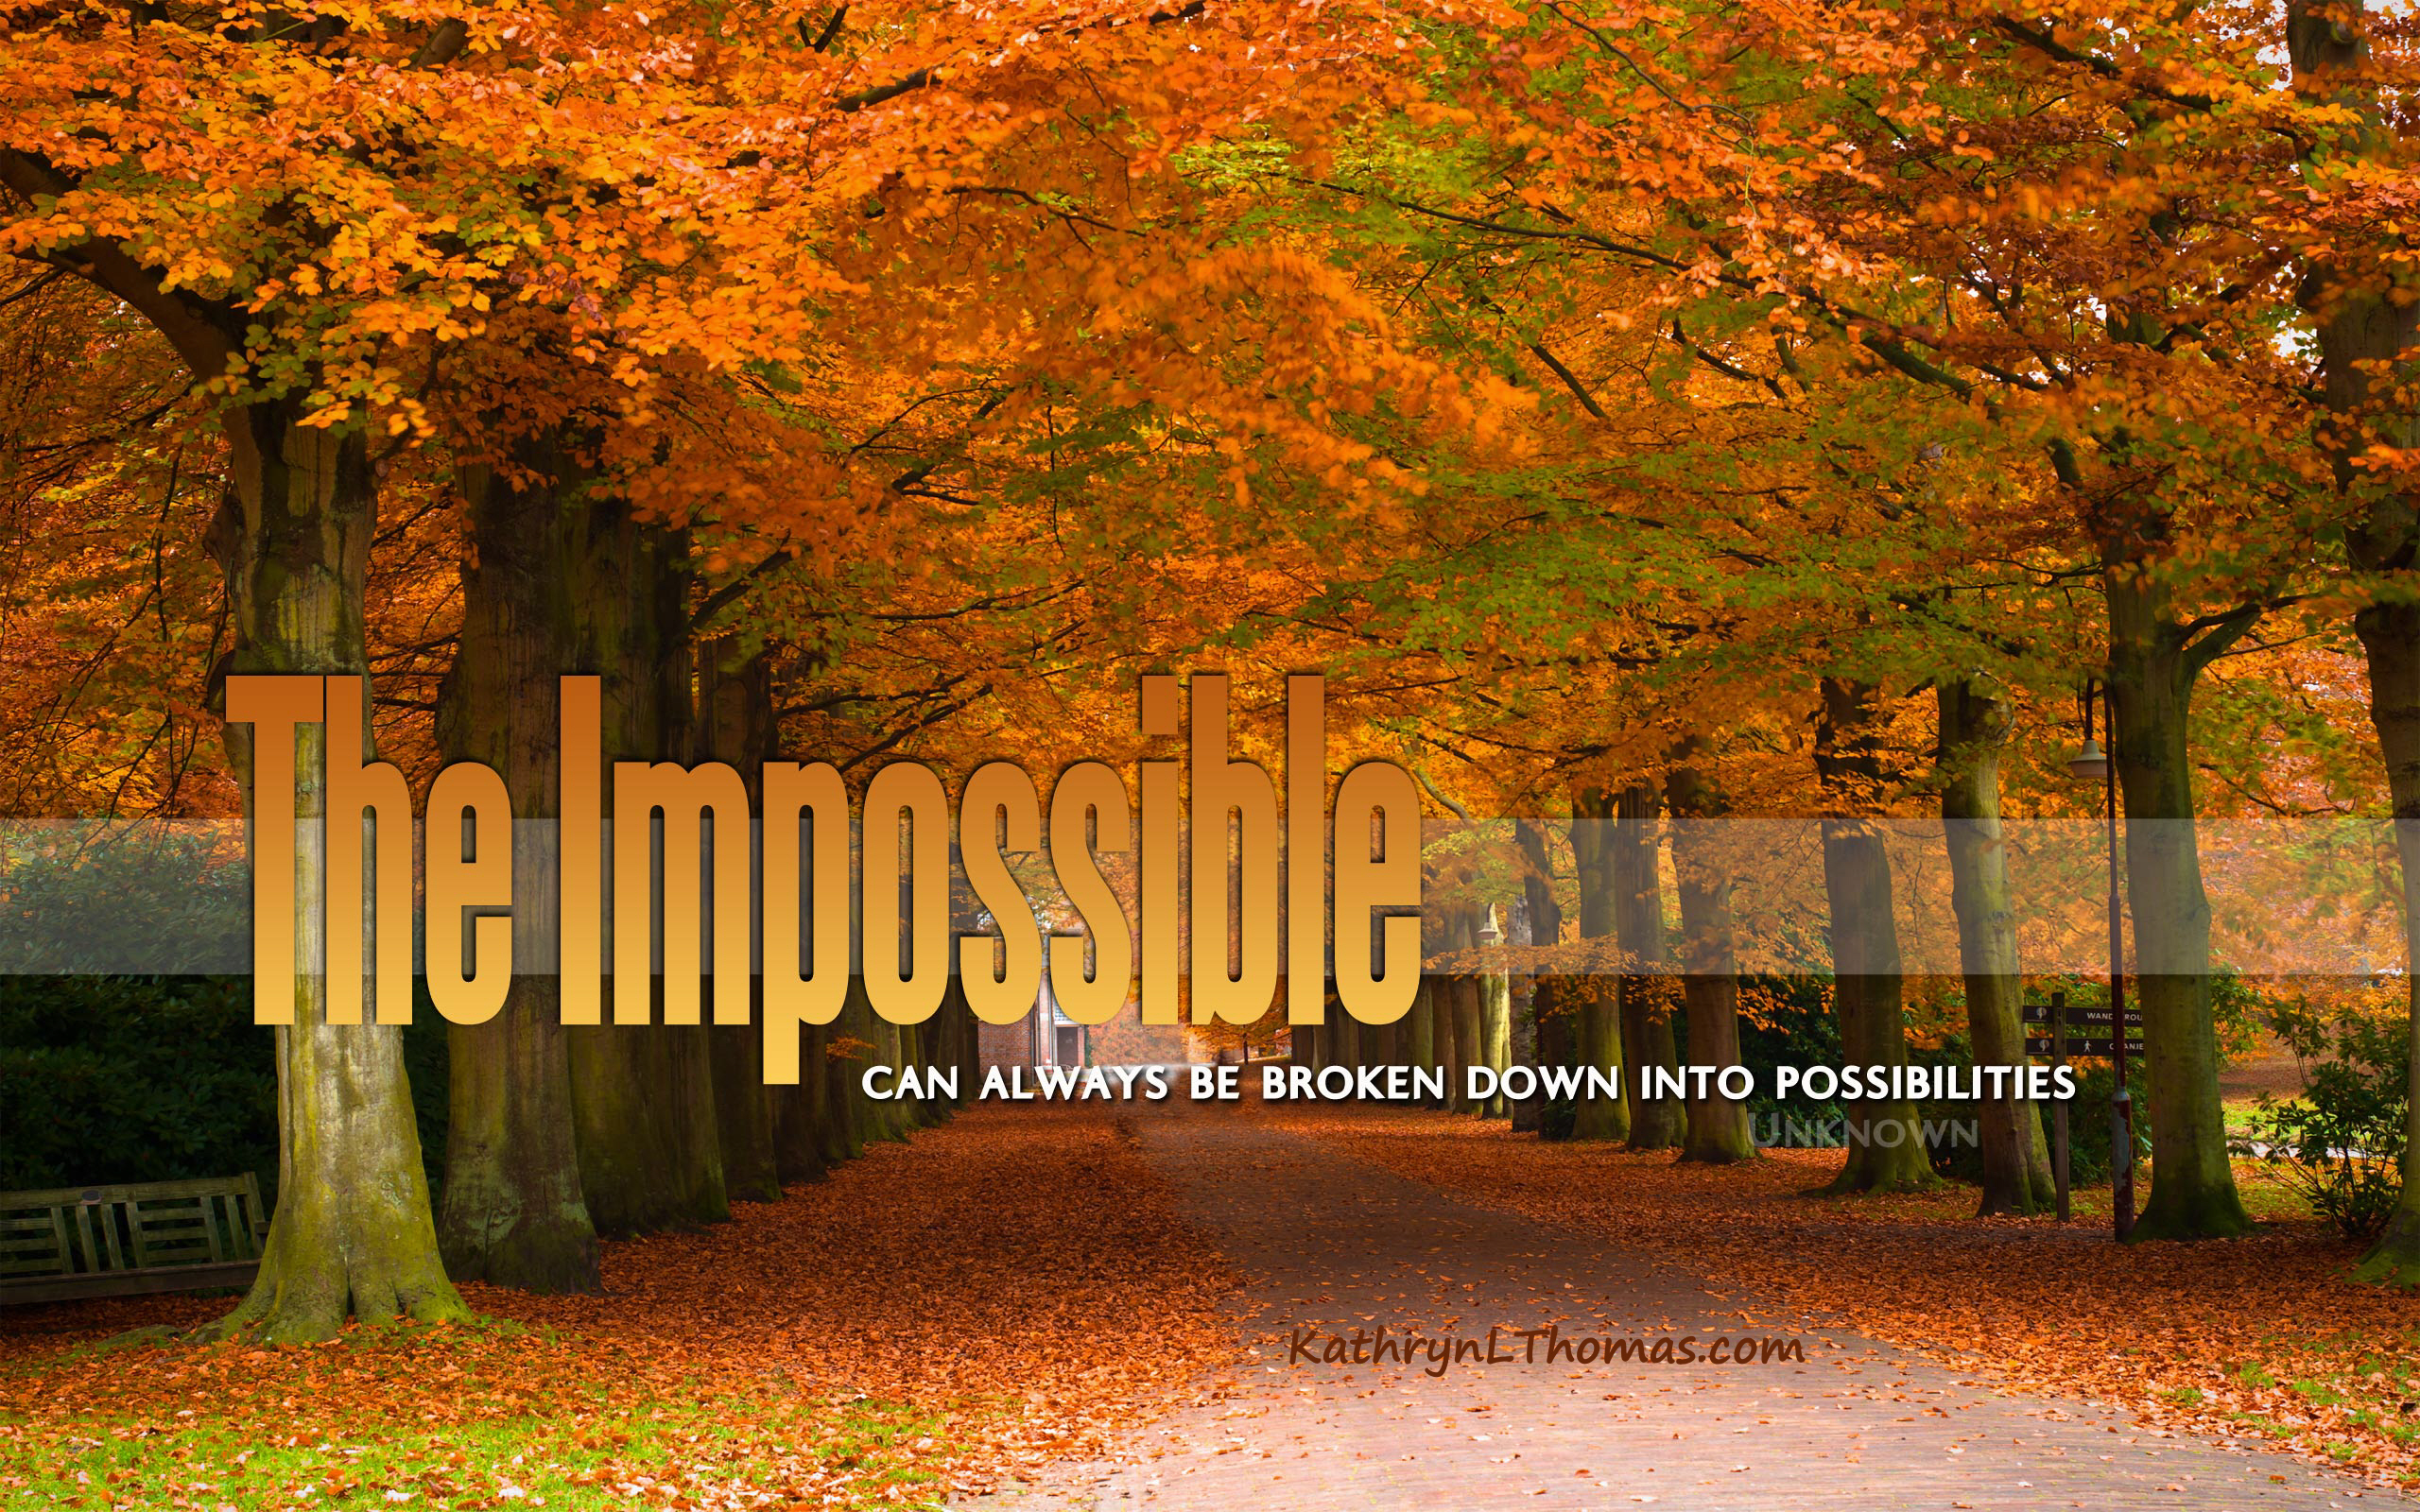 Quote about achieving the impossible